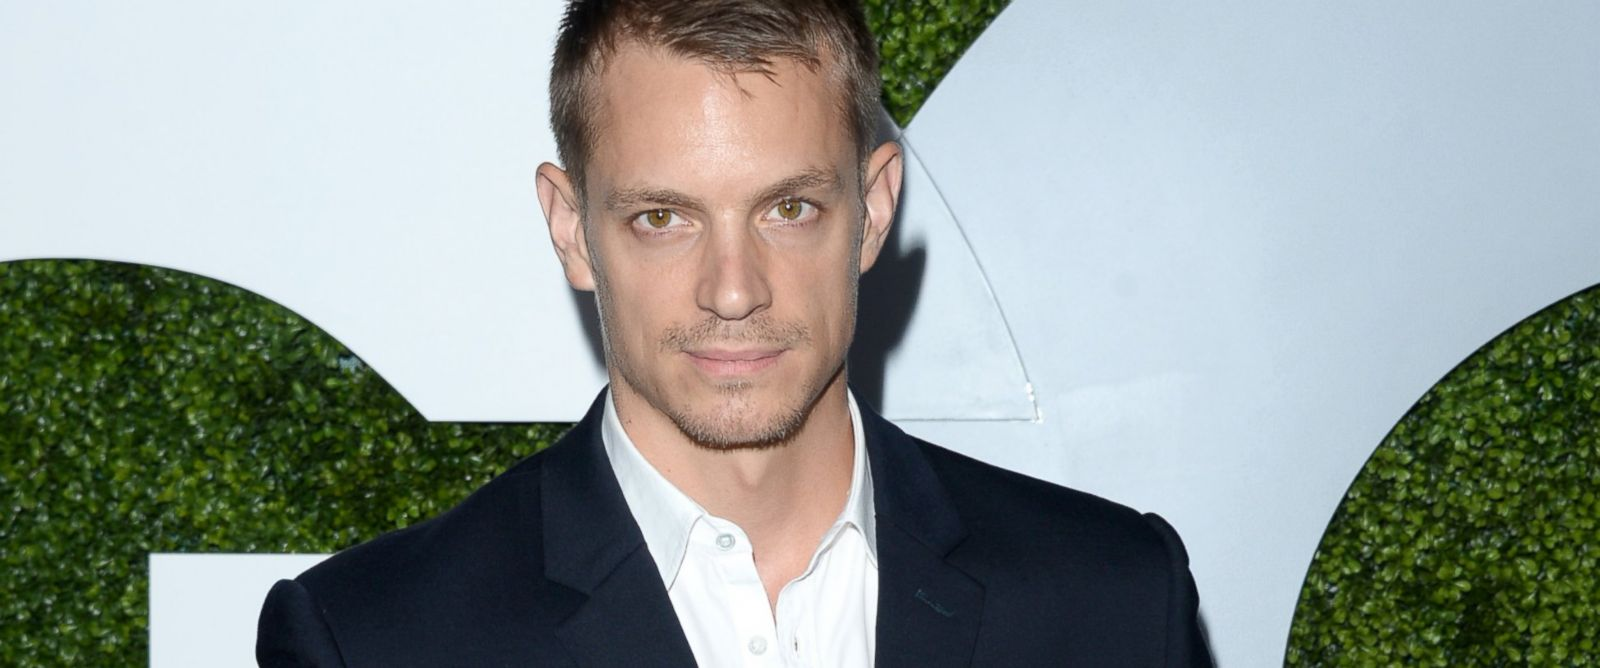 PHOTO: Joel Kinnaman is pictured on Dec. 4, 2014 in Los Angeles, Calif.